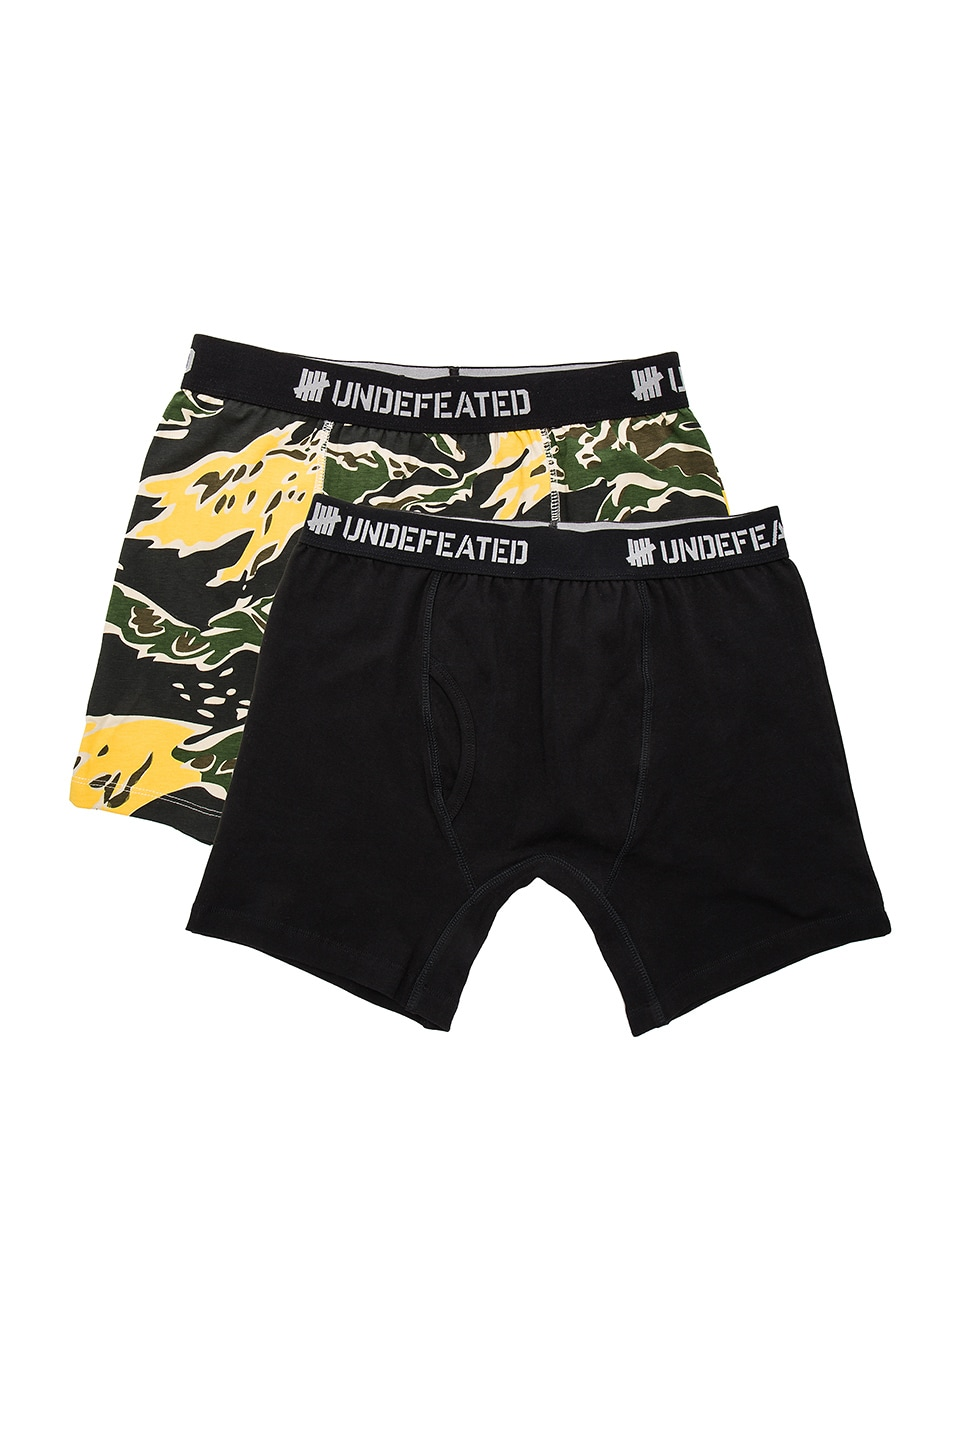 2 Pack Boxer Shorts by Undefeated